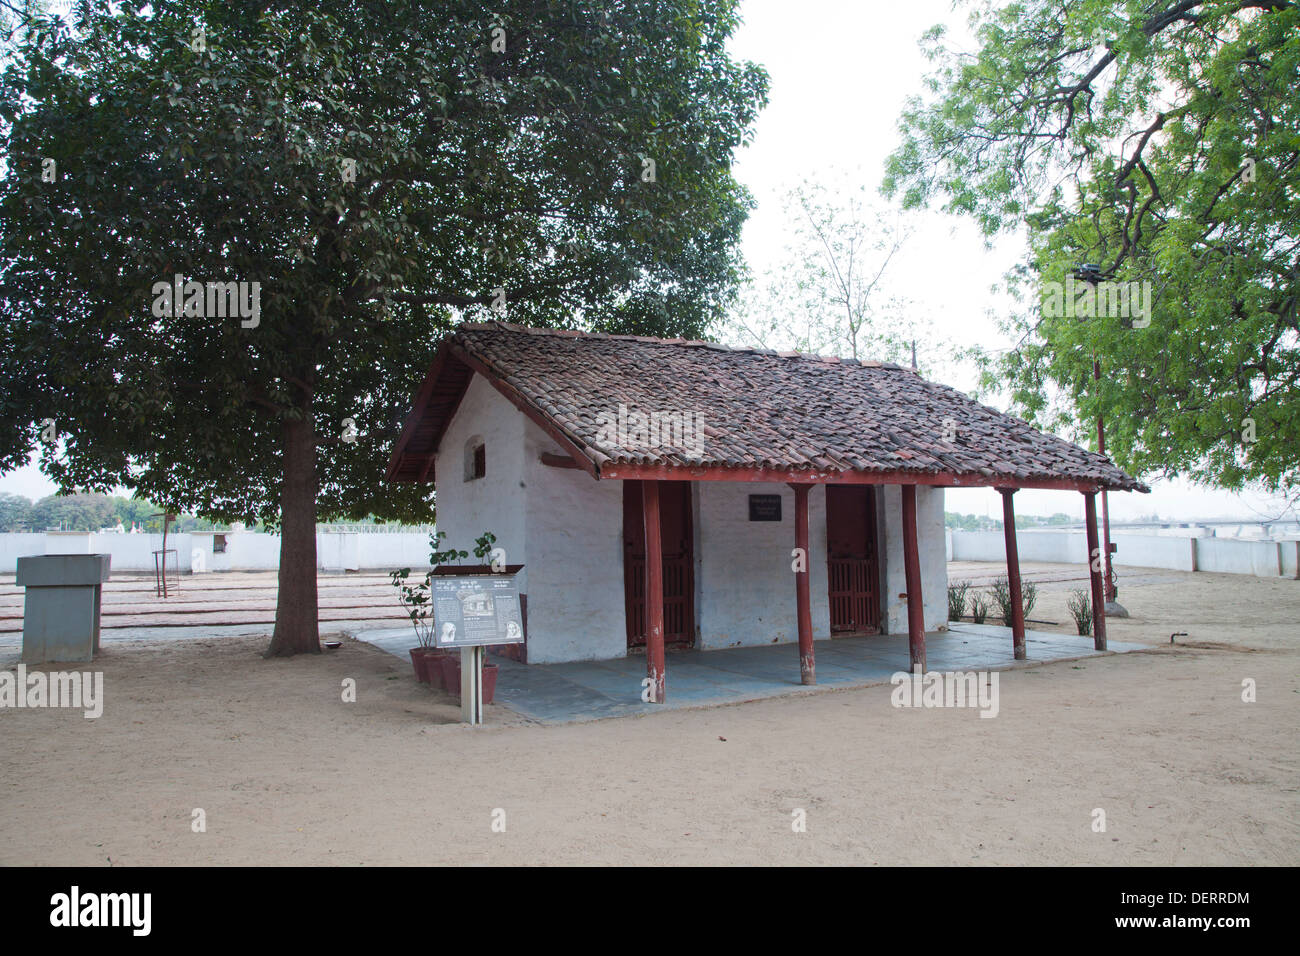 Facade of a hut, Sabarmati Ashram, Ahmedabad, Gujarat, India - Stock Image